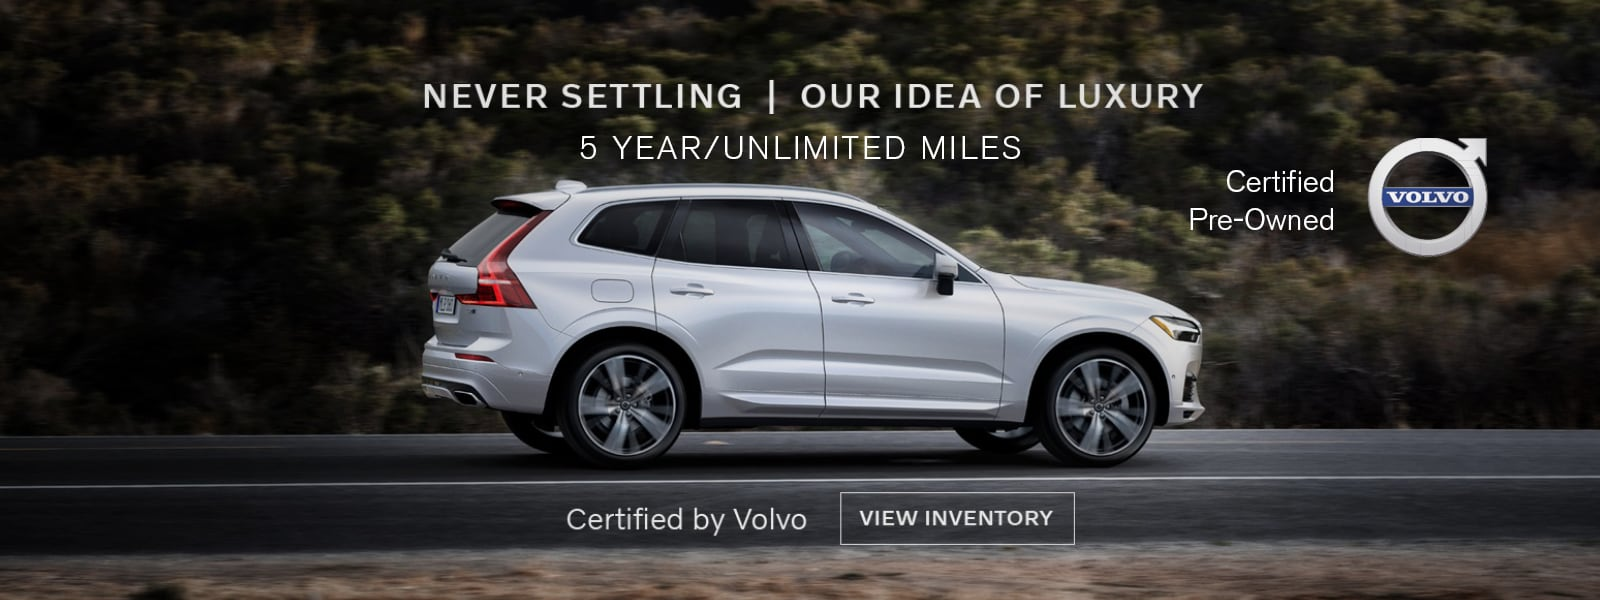 Benefits Of Certified By Volvo Volvo Cars San Diego